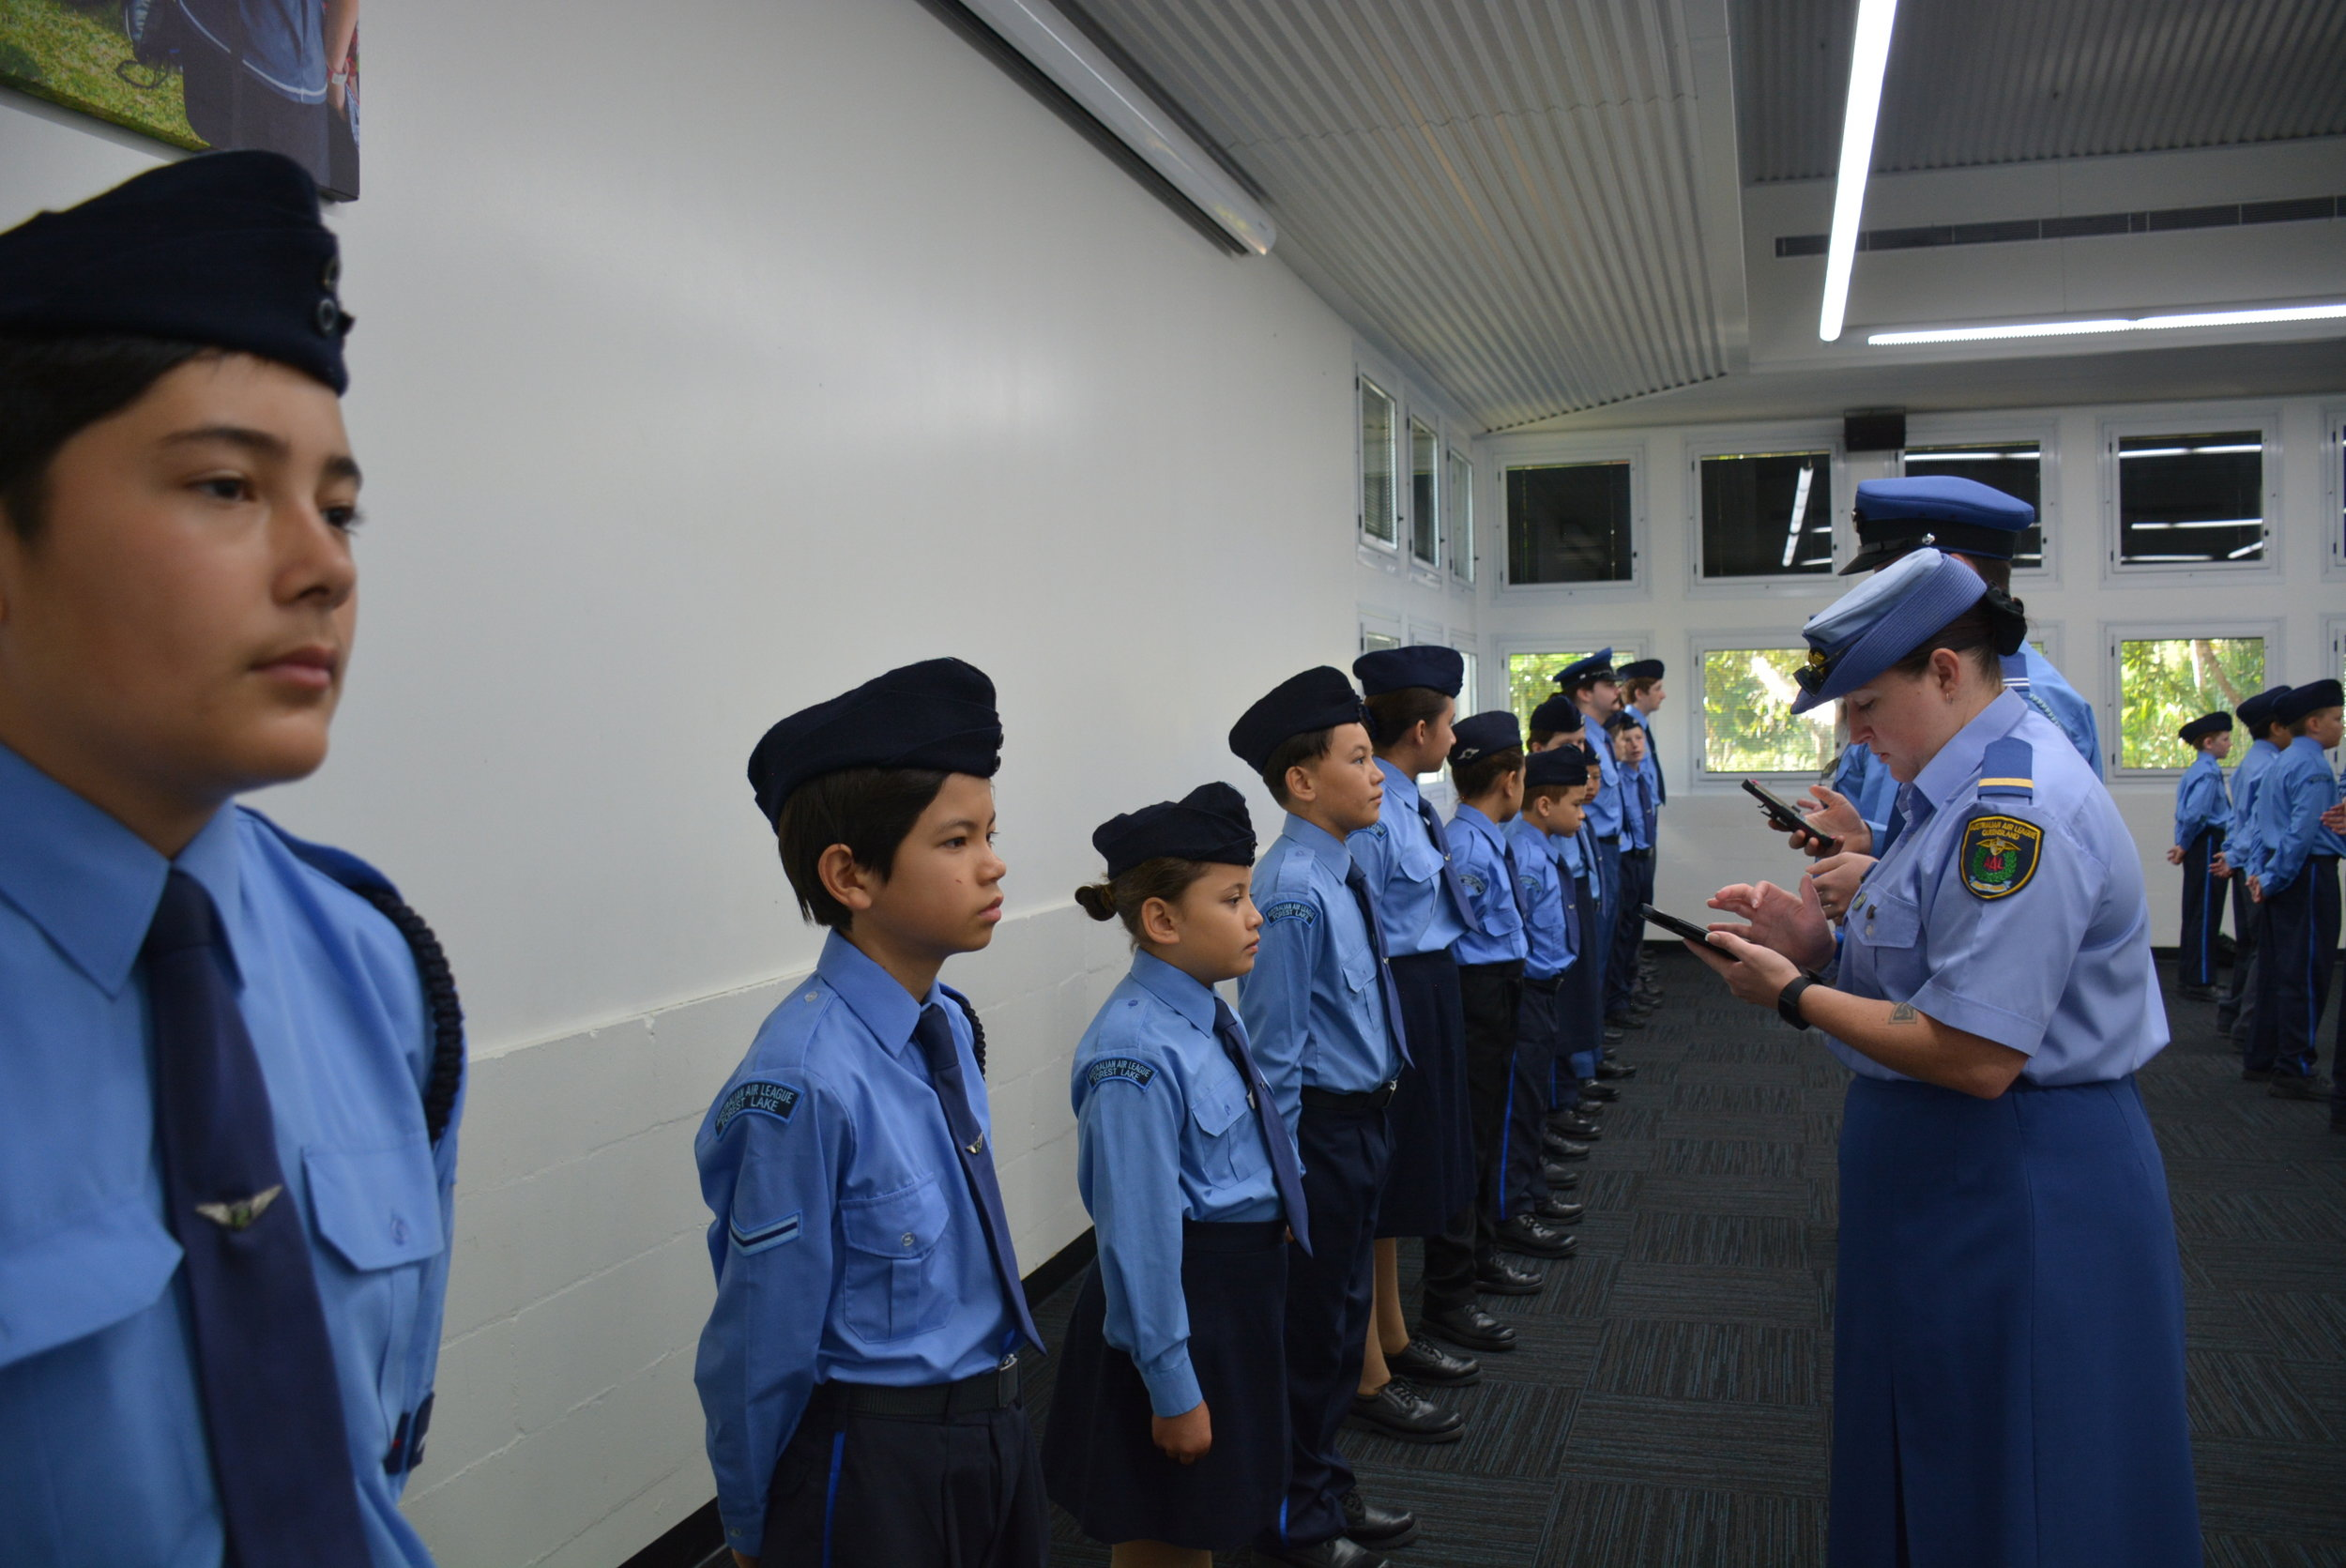 Uniform inspection at group review